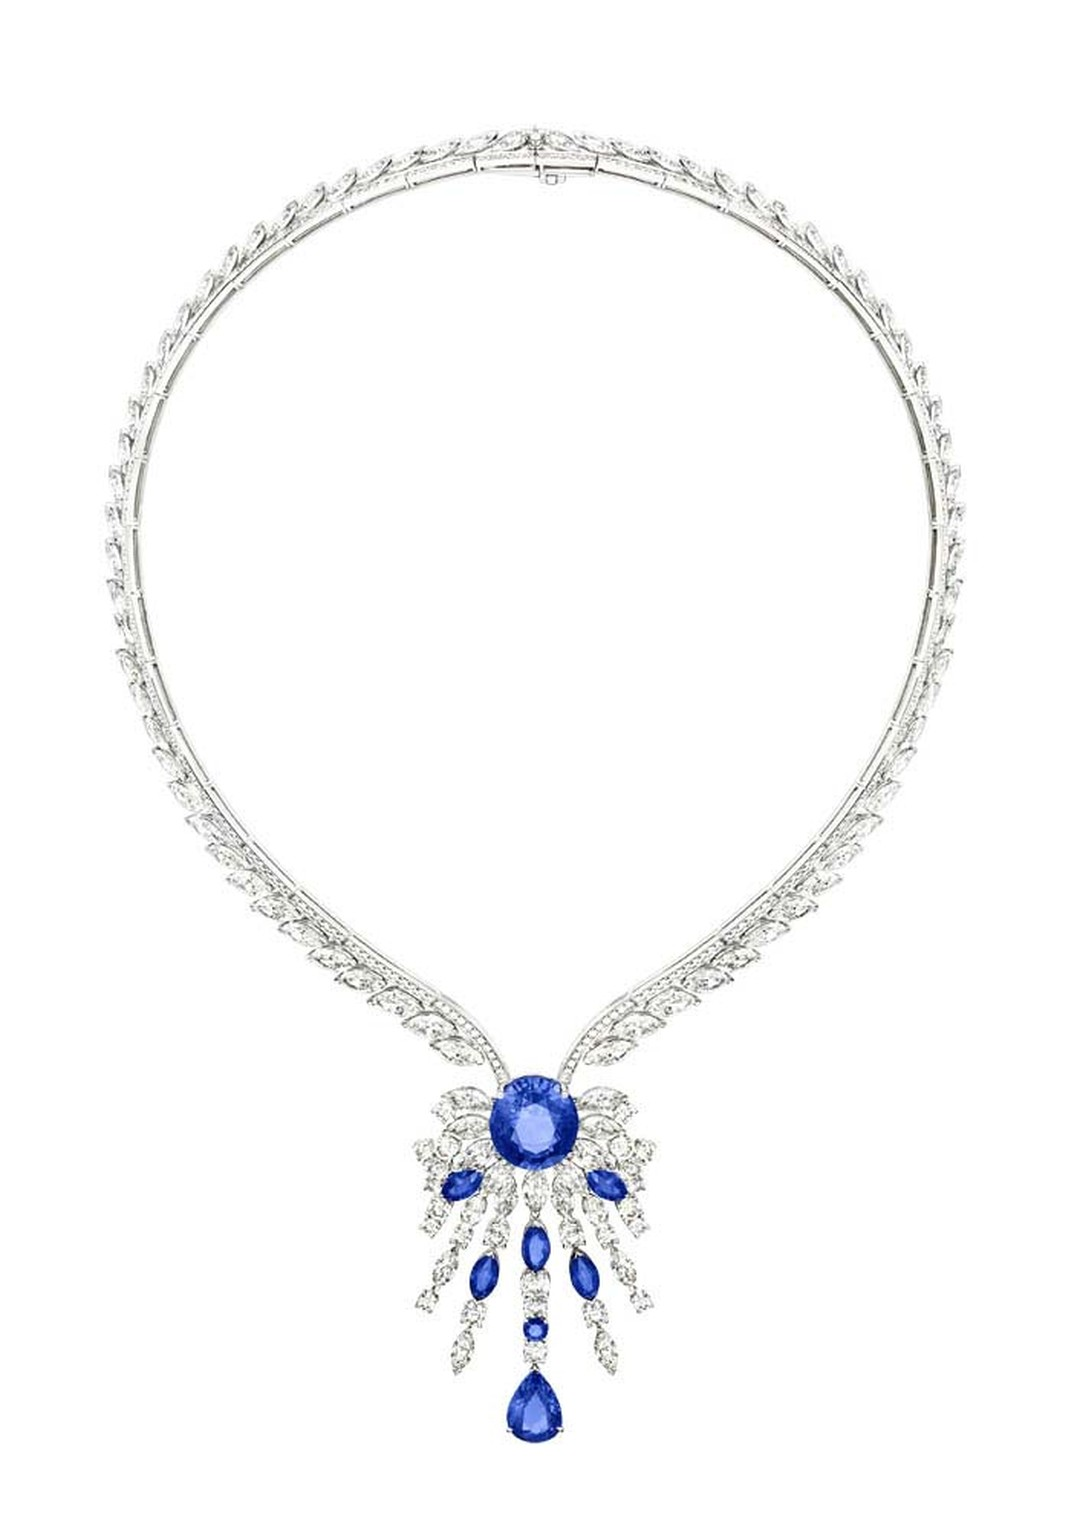 Extremely Piaget collection necklace in white gold set with 23.11ct marquise-cut diamonds, a 14.28ct oval-cut blue sapphire, brilliant-cut diamonds, marquise-cut blue sapphires, a pear-shaped blue sapphire and a brilliant-cut blue sapphire.